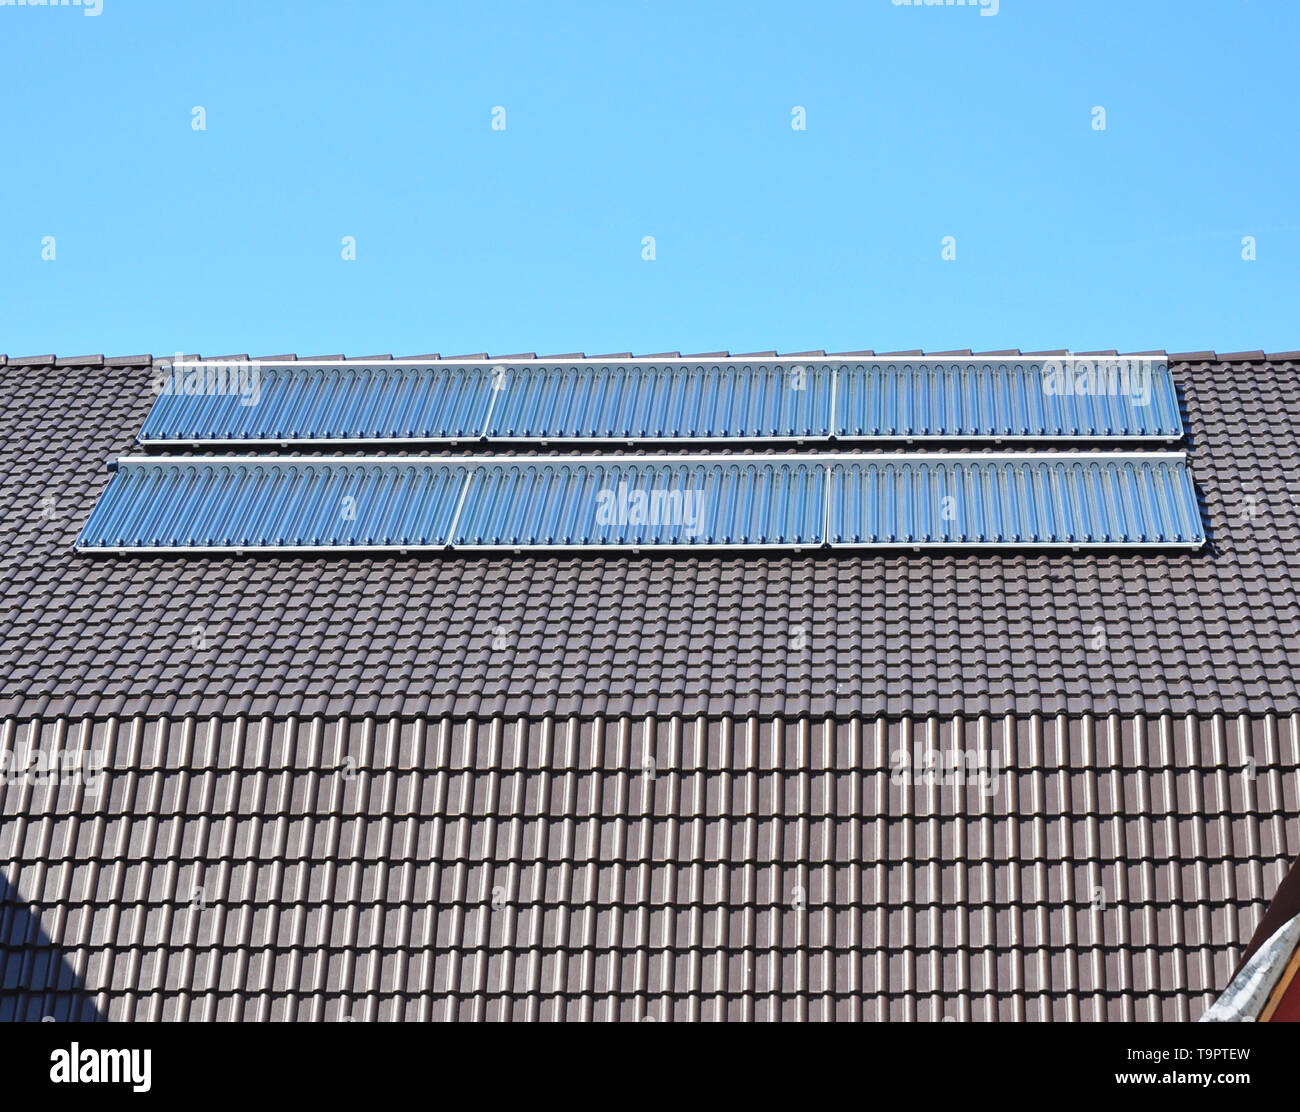 Close up on Solar panels. Solar Water Panels Heating. - Stock Image